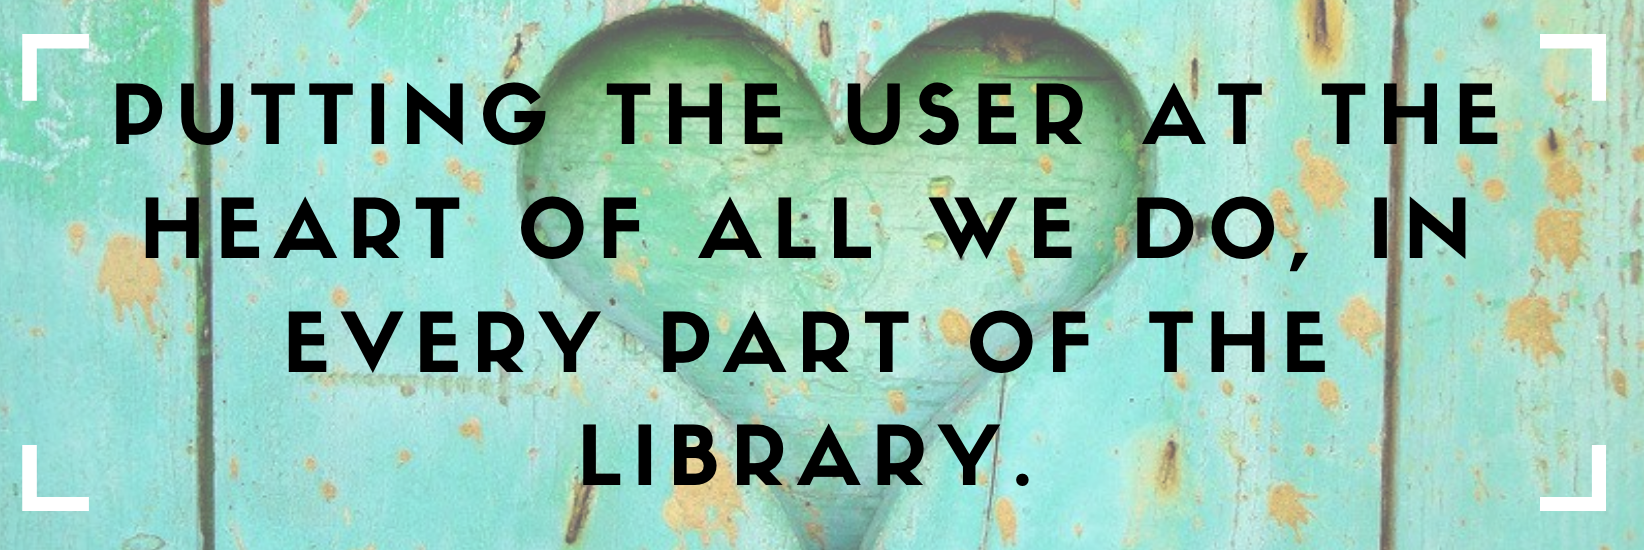 Putting the user at the center of all we do